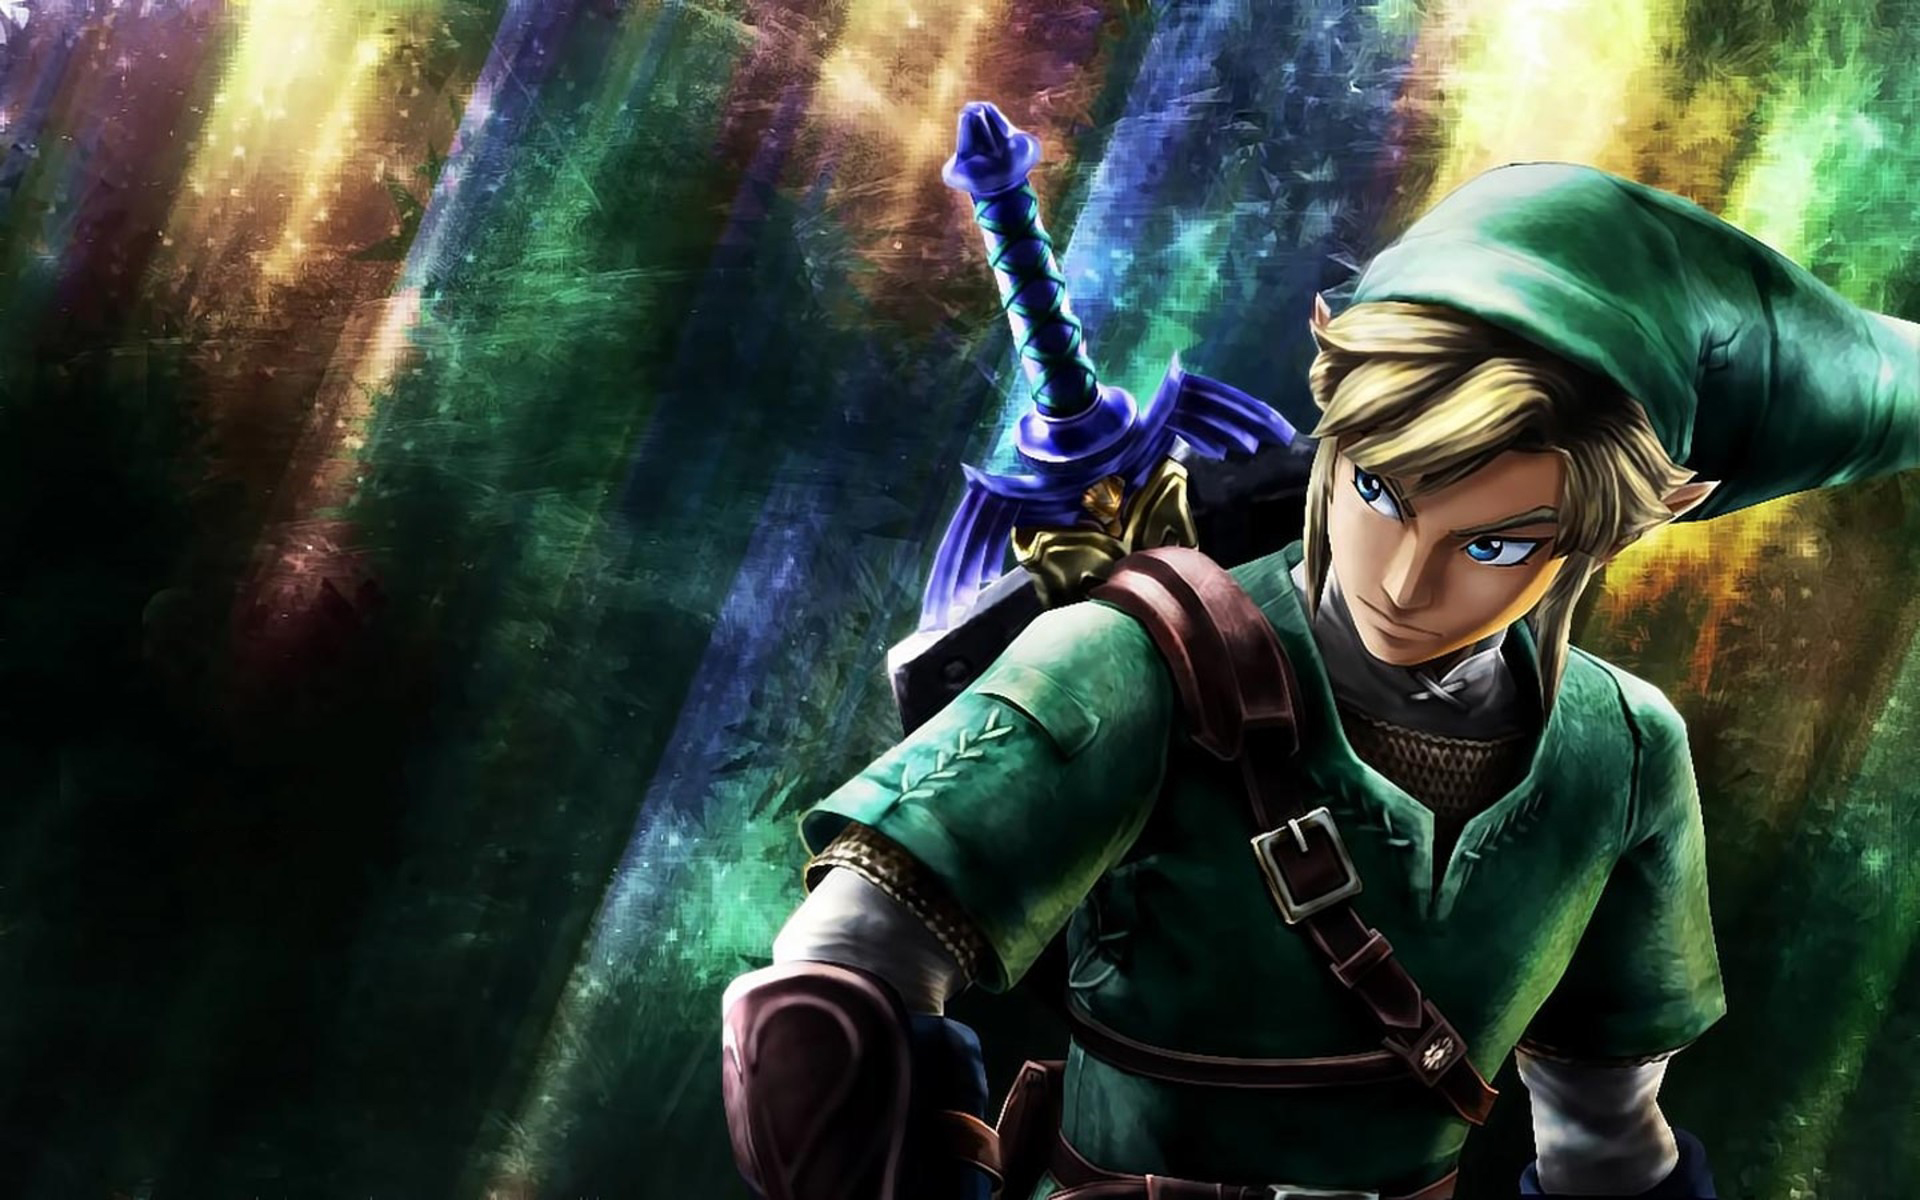 4290612 Heres A Pretty Cool Link Wallpaper For Legend Of Zelda